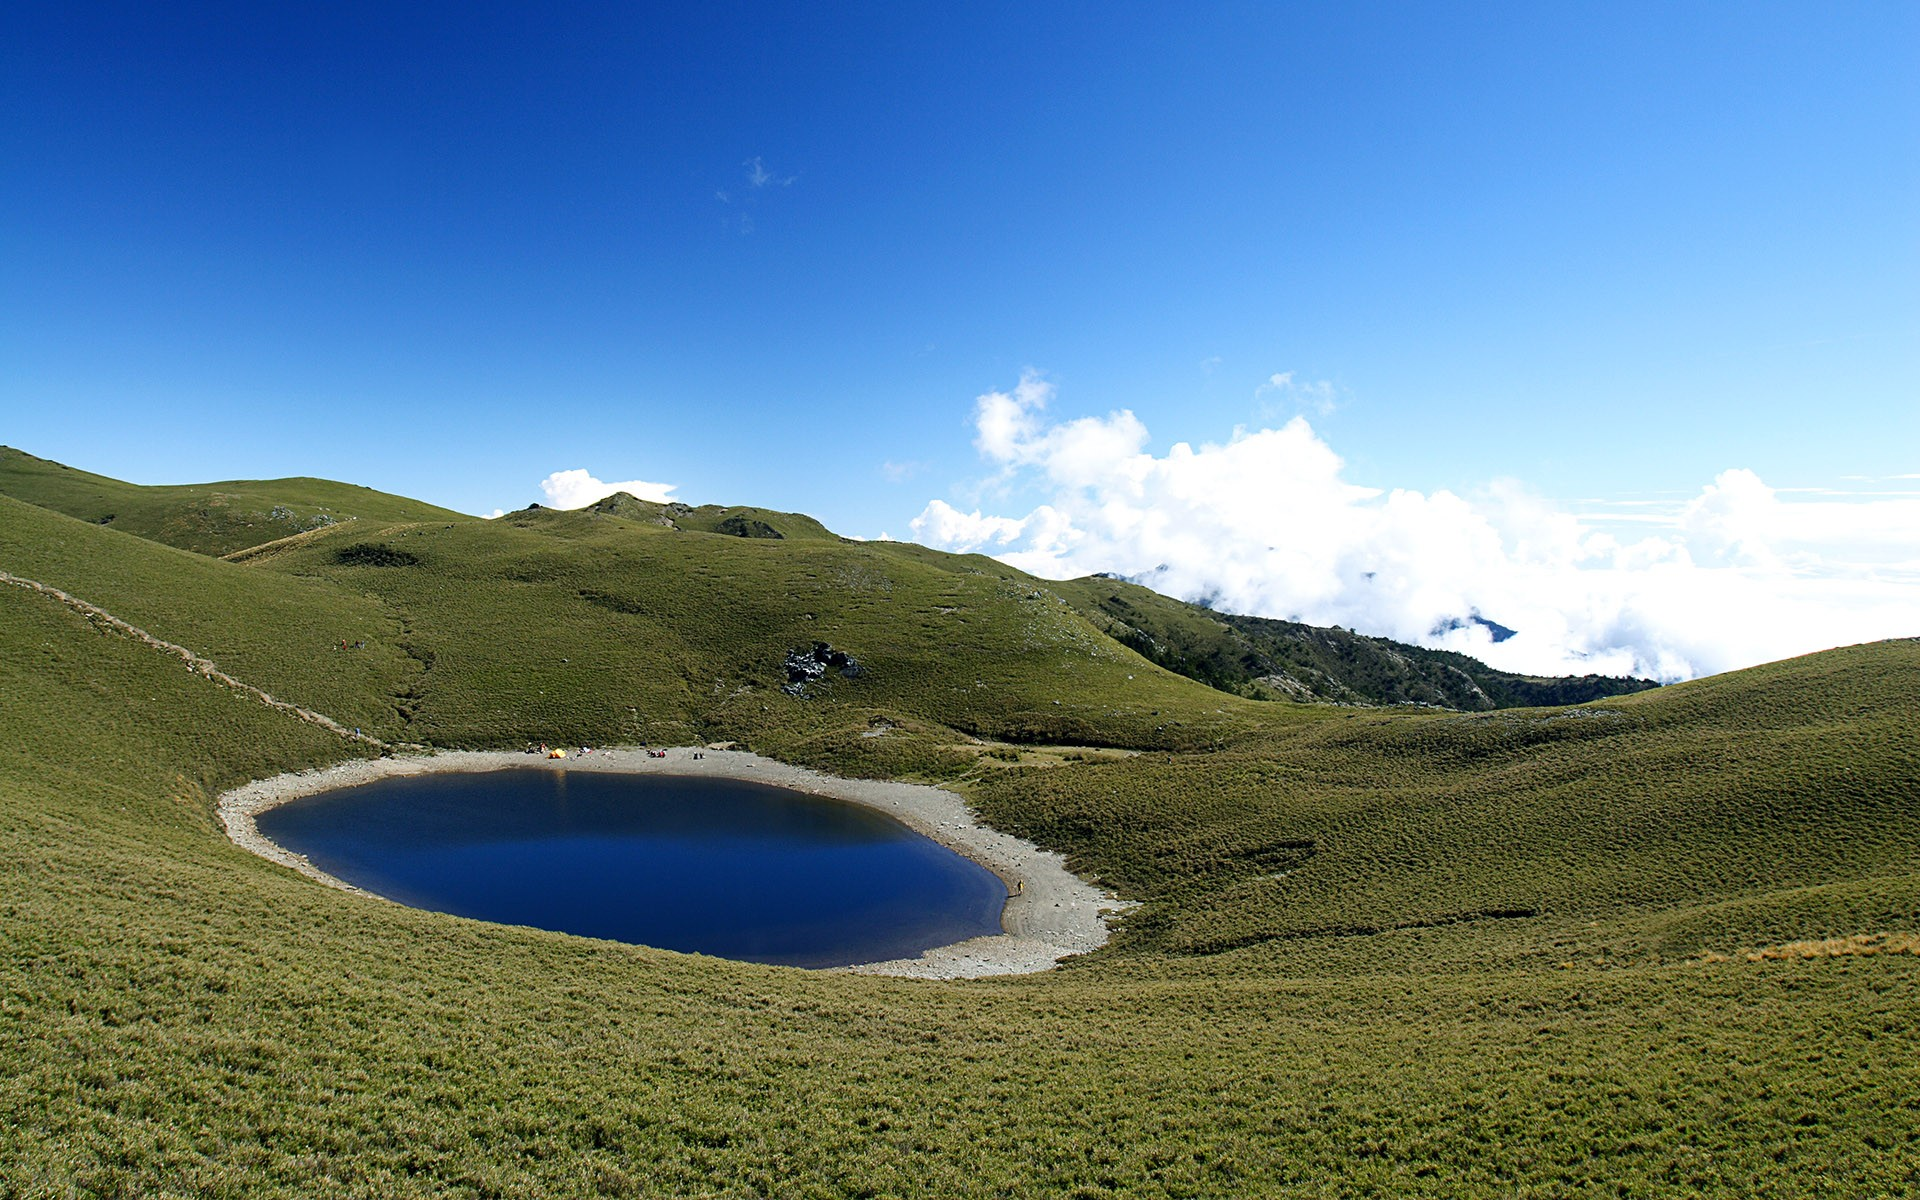 Pond at the top